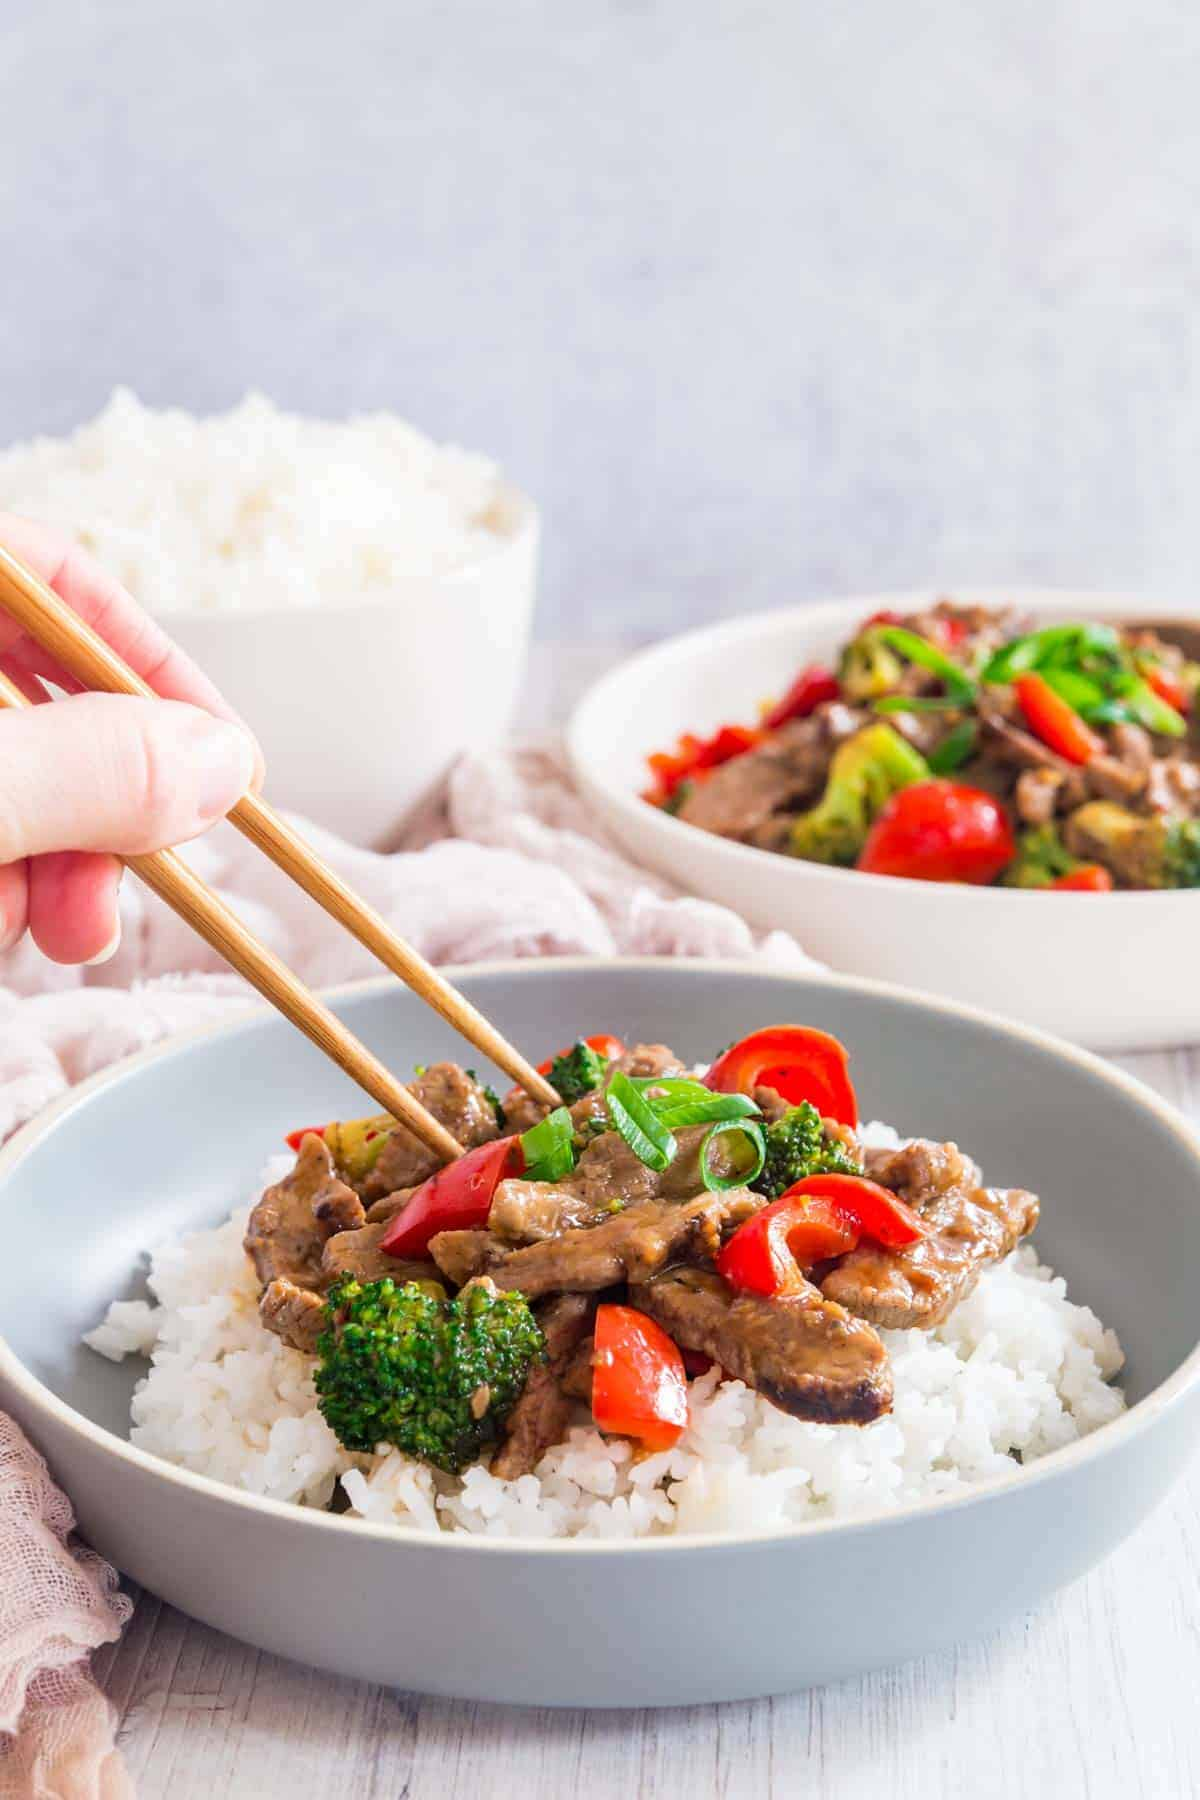 someone holding chopsticks to pick up stir fry beef and veggies over rice